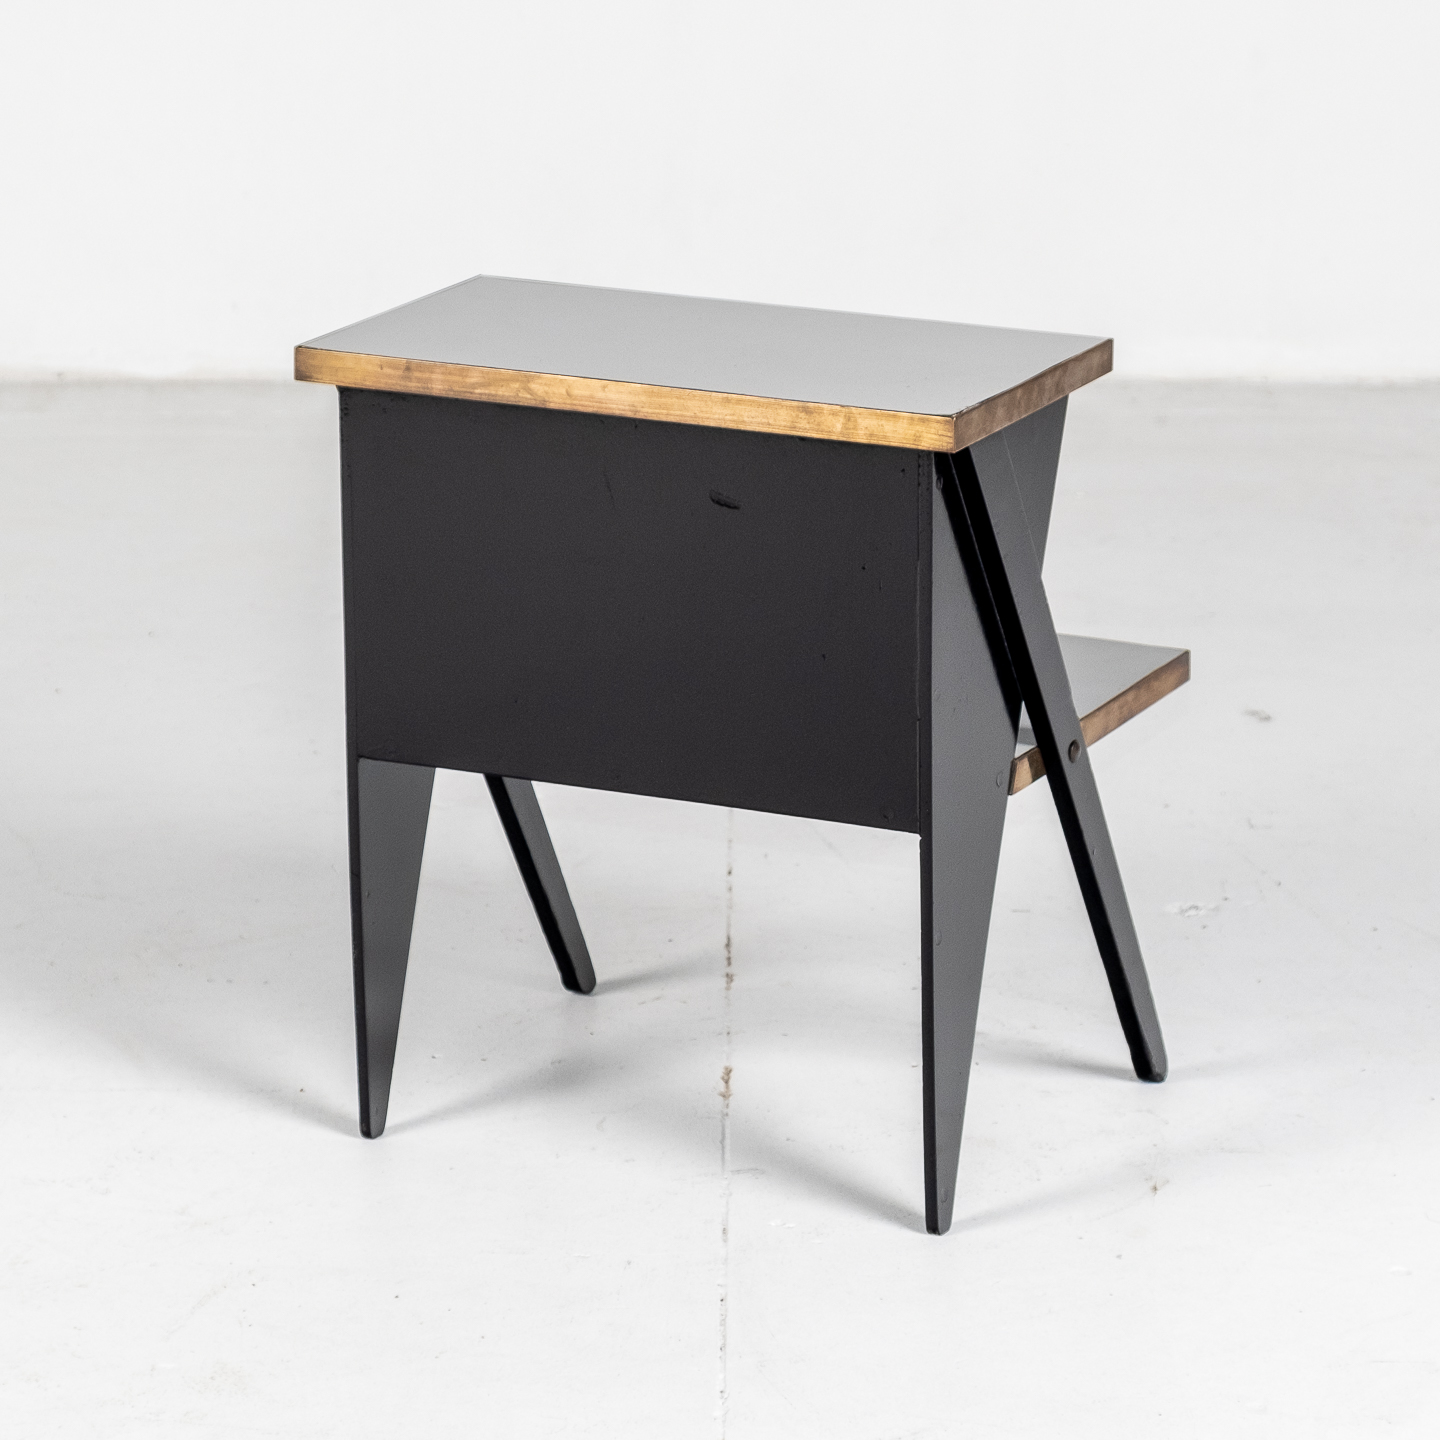 Side Table In The Style Of De Stijl In Brass And Laminate With Ebonised Finish, 1930s, The Netherlands304